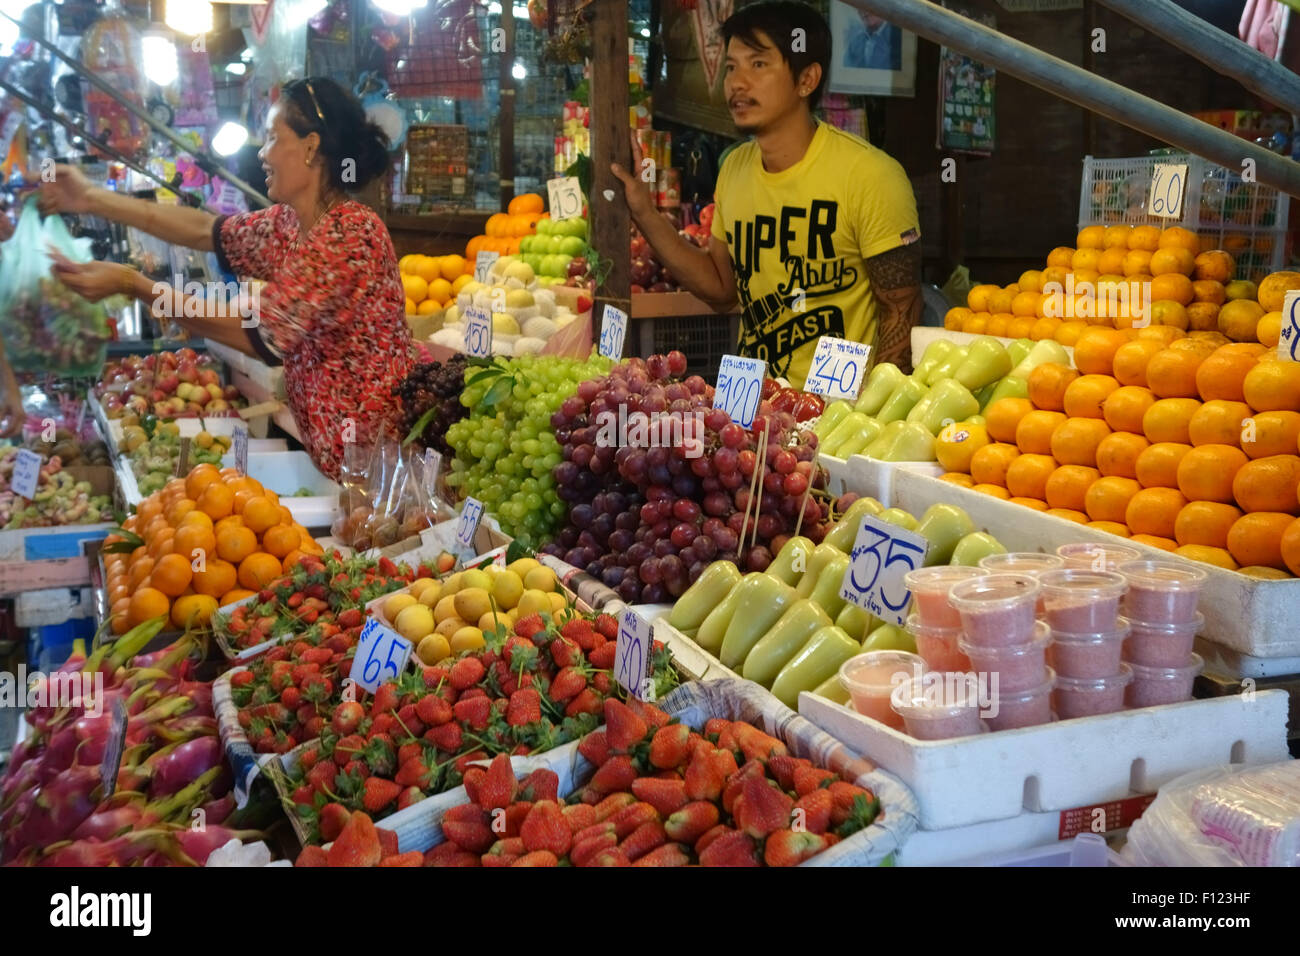 Fruit stall in a Bangkok food market with prices in Thai baht and a woman serving customers, Thailand - Stock Image